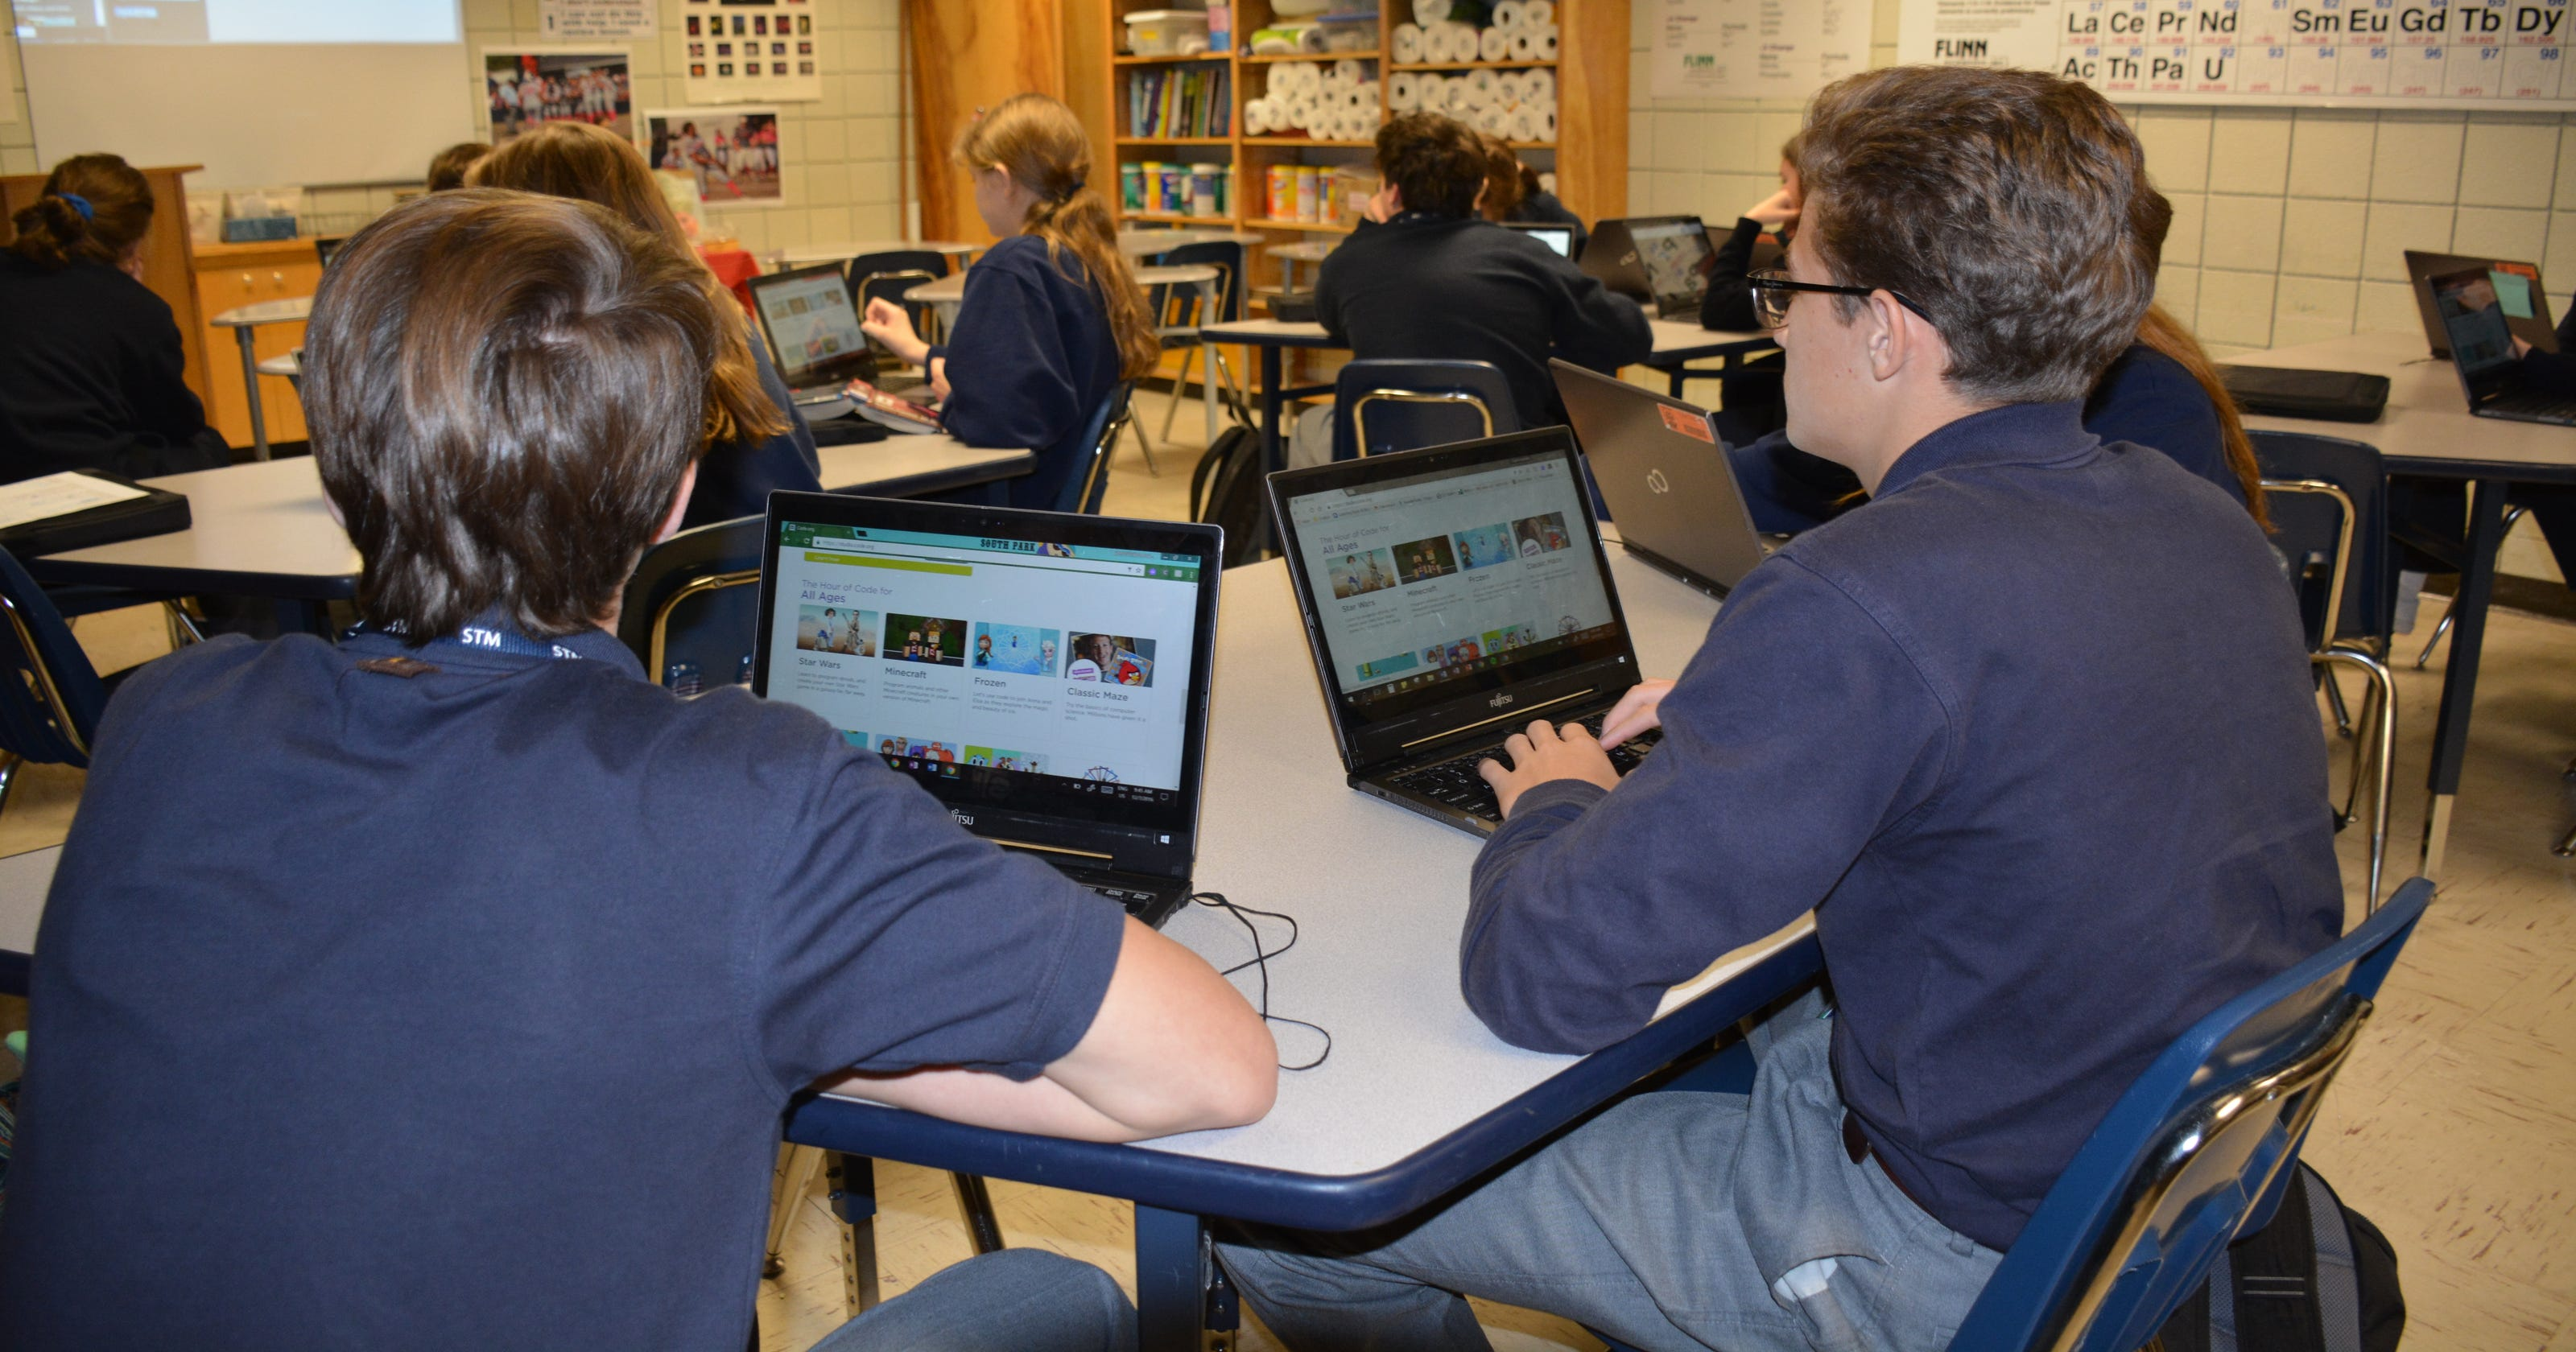 St  Thomas More participates in global Hour of Code